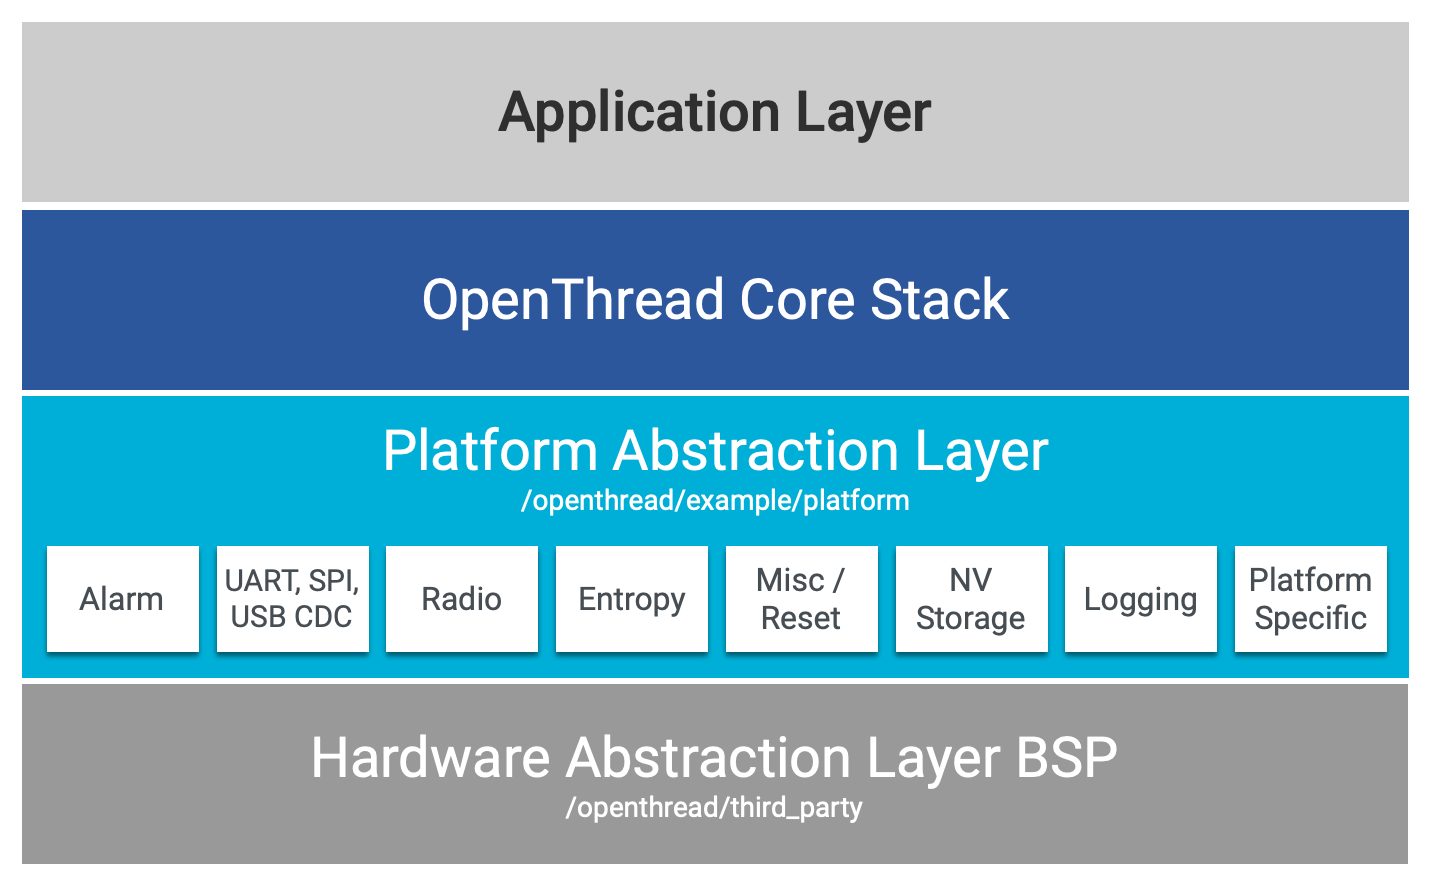 Implement Platform Abstraction Layer APIs | OpenThread